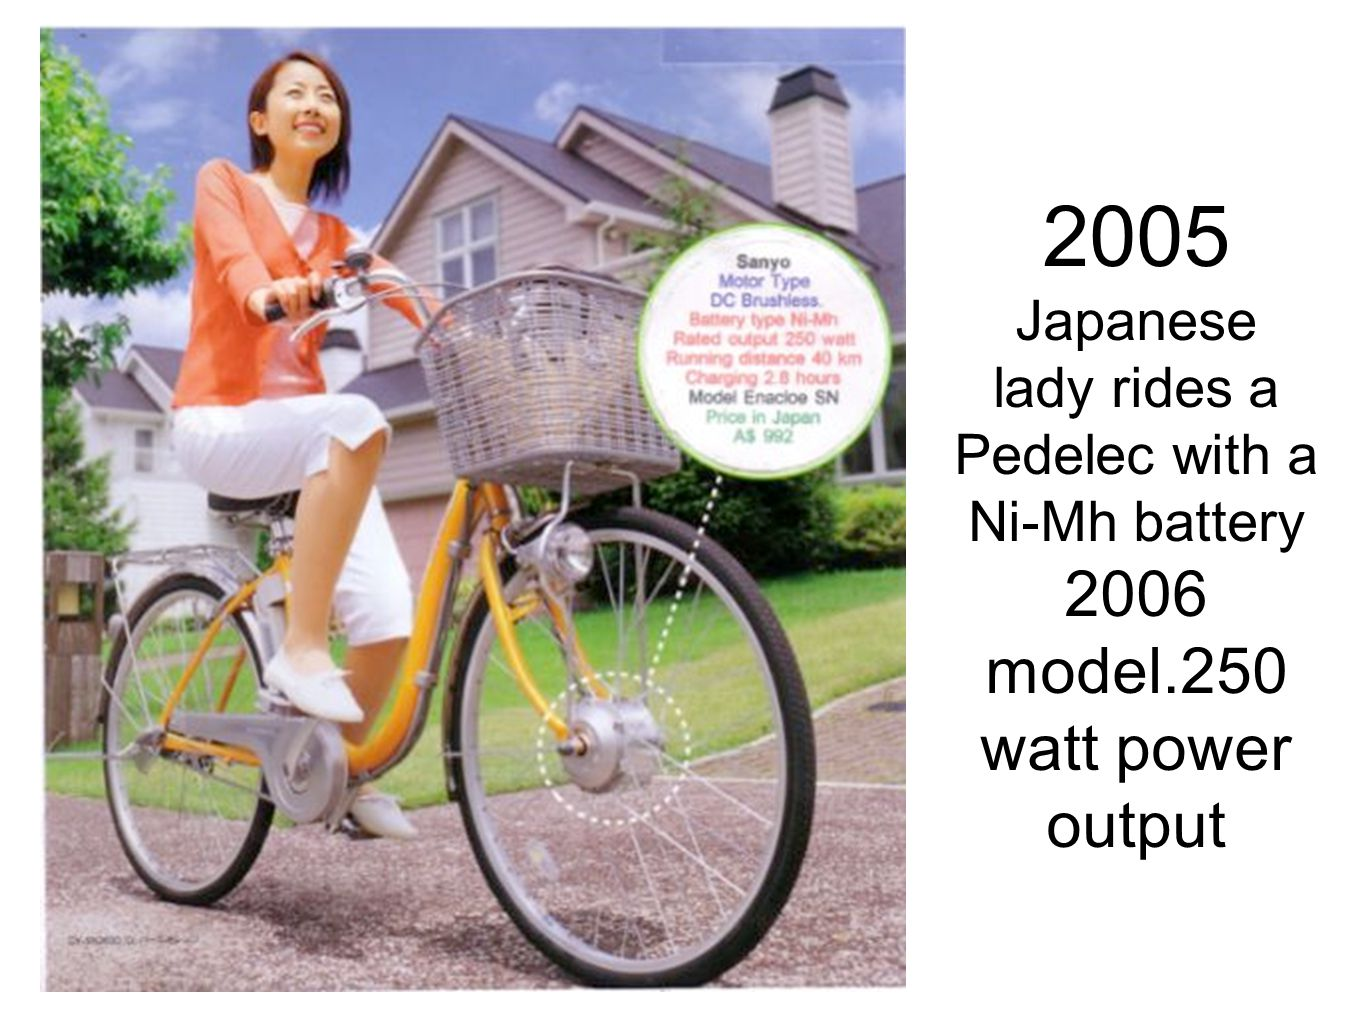 2005 Japanese lady rides a Pedelec with a Ni-Mh battery 2006 model.250 watt power output